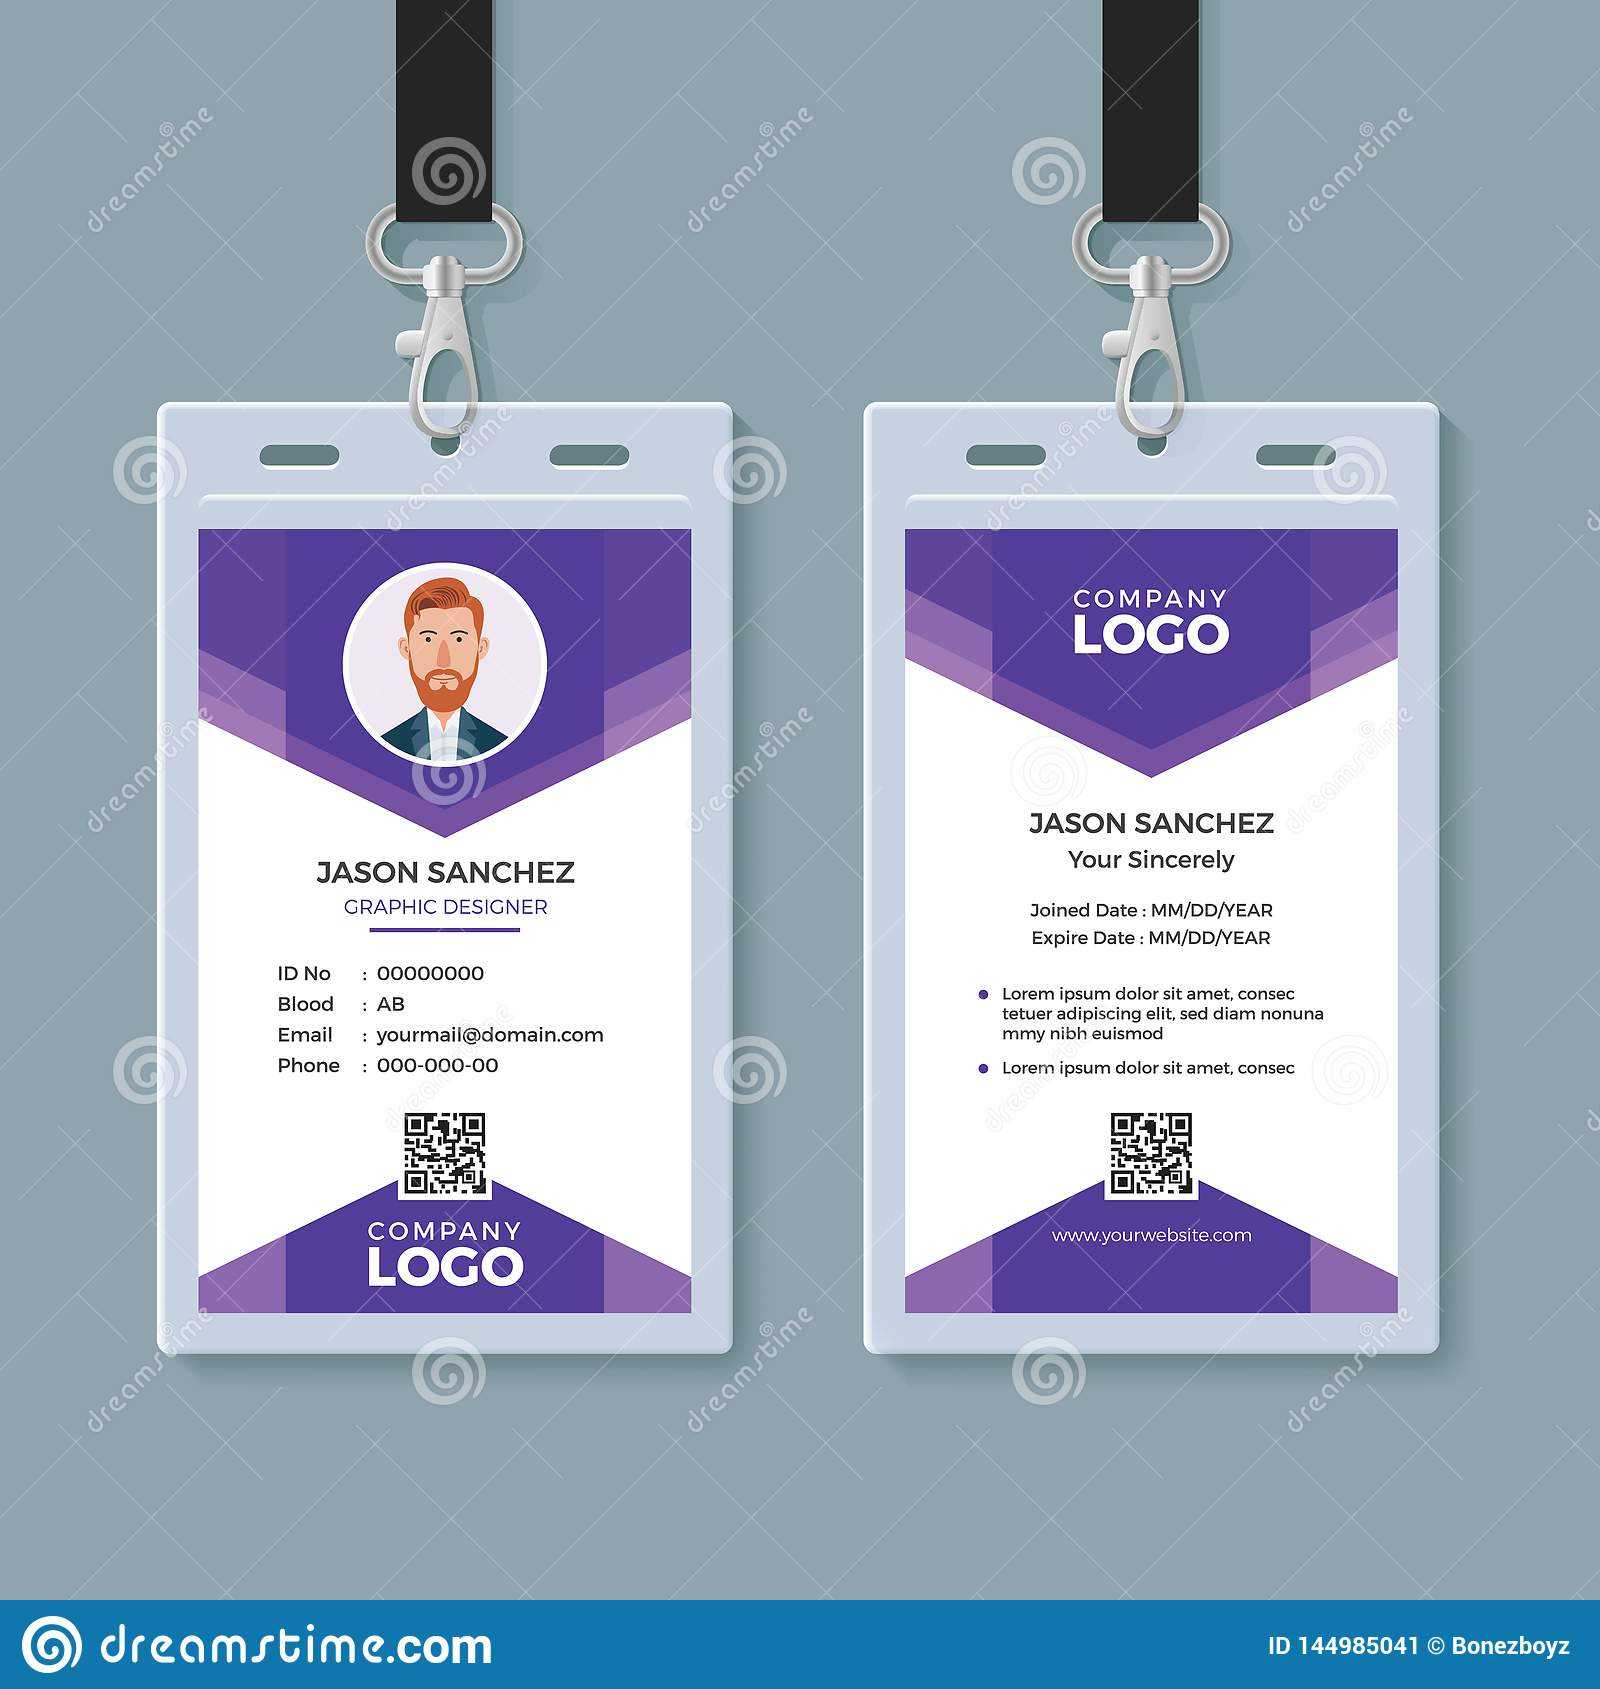 Creative Id Card Template Stock Vector. Illustration Of With Conference Id Card Template